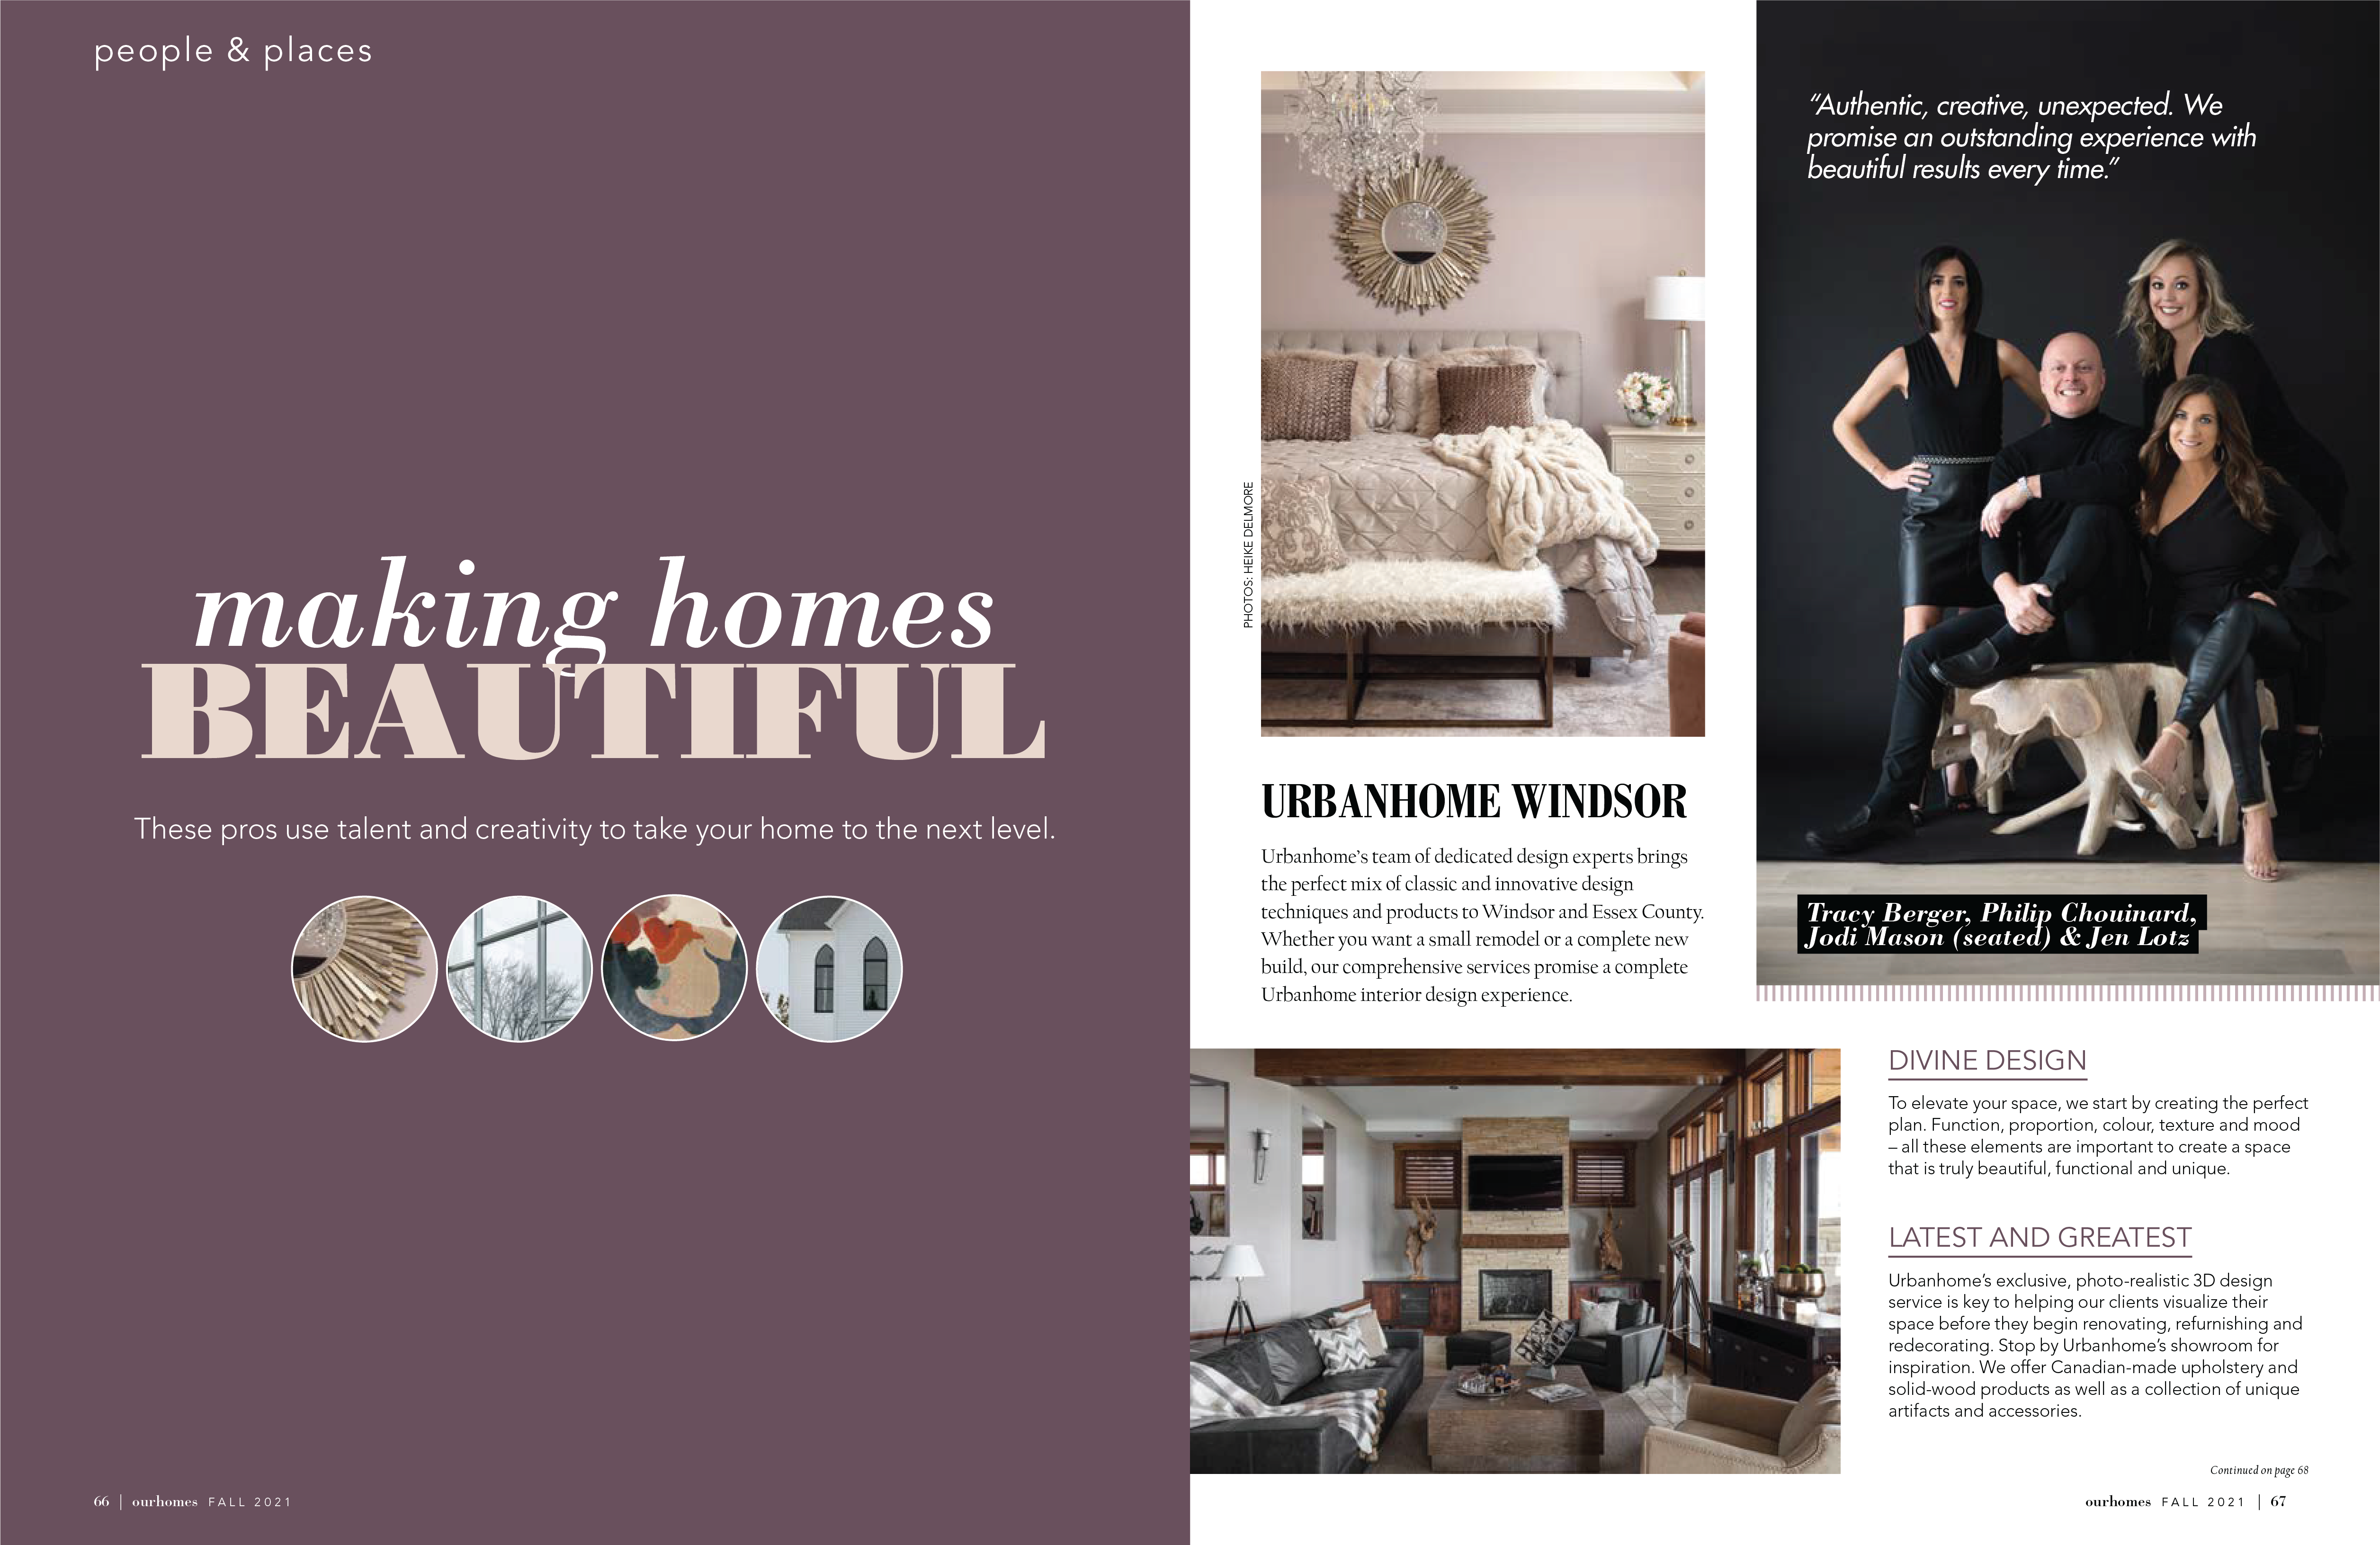 Ourhomes Magazine People and Places